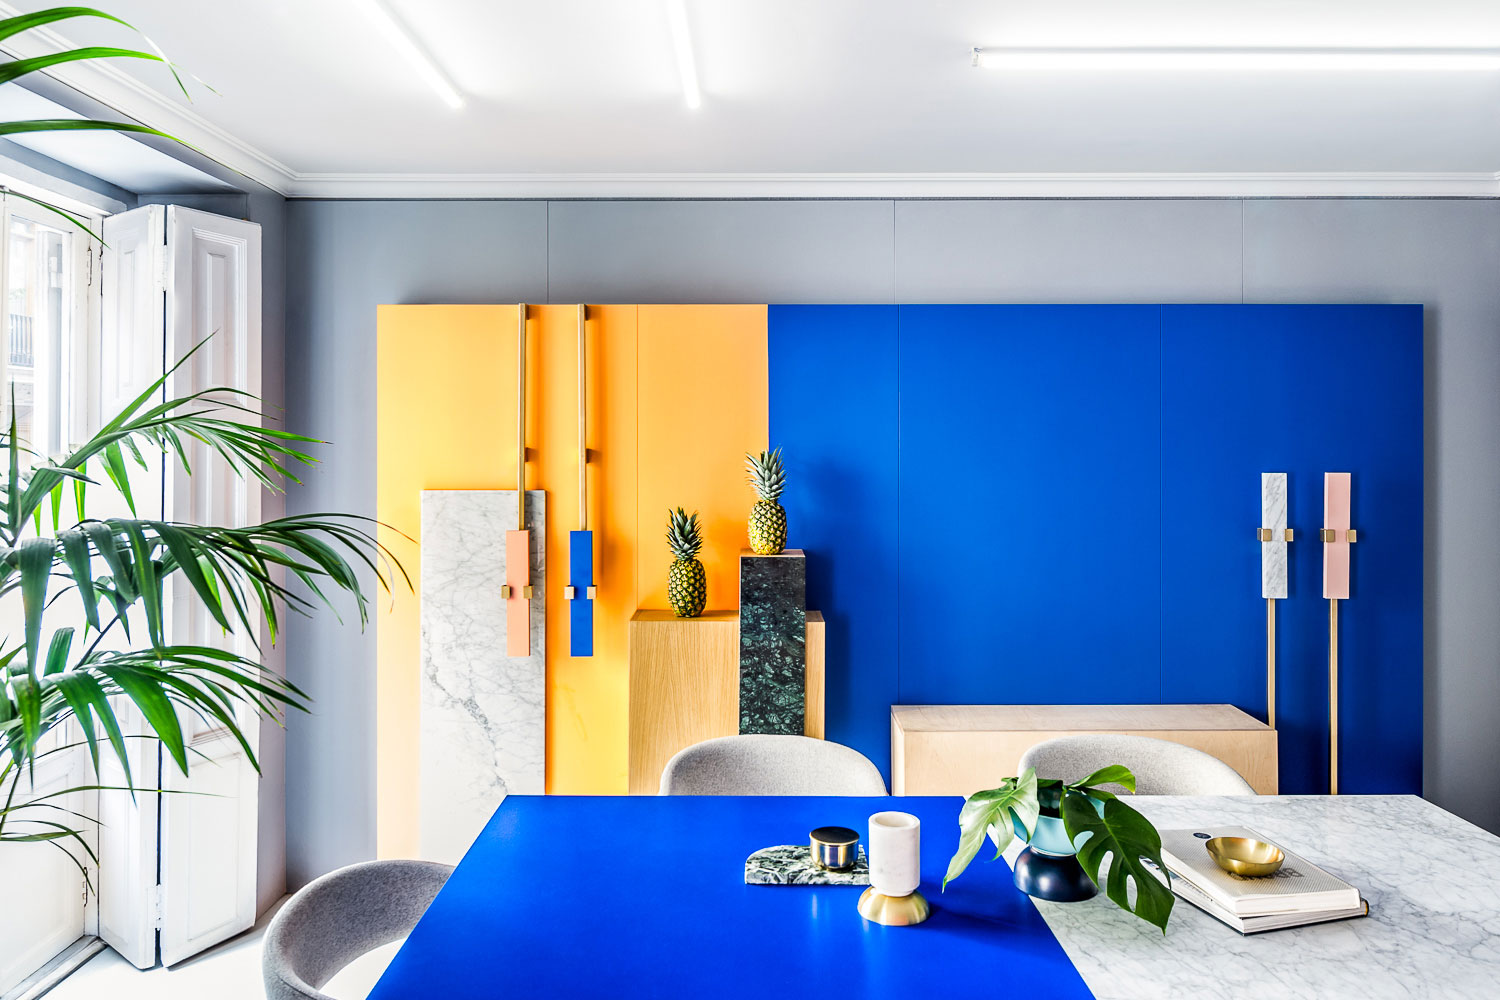 1_Masquespacio Office_Inspirationist